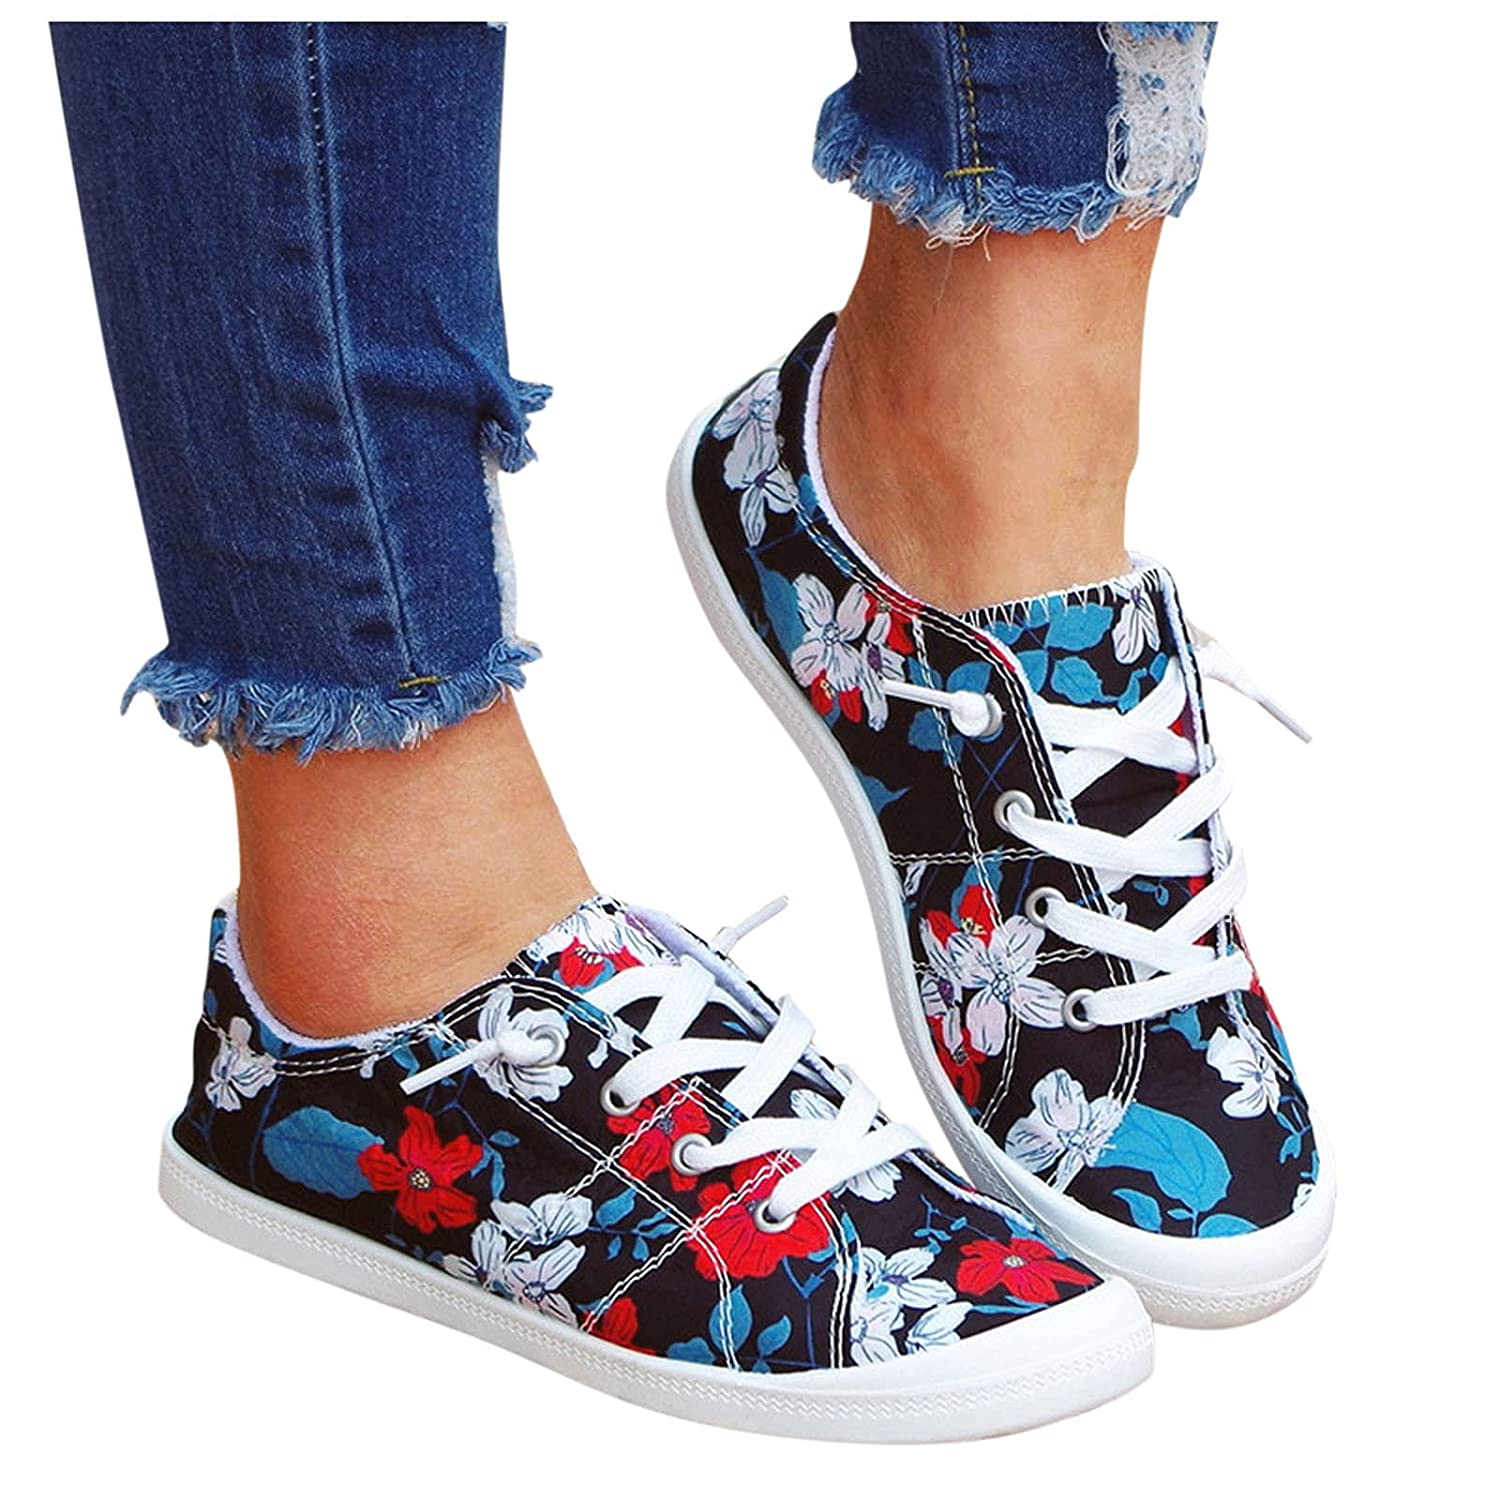 Padaleks Women's Slip-On Canvas Sneaker All stores are sold Fashion Top Lac Low High quality